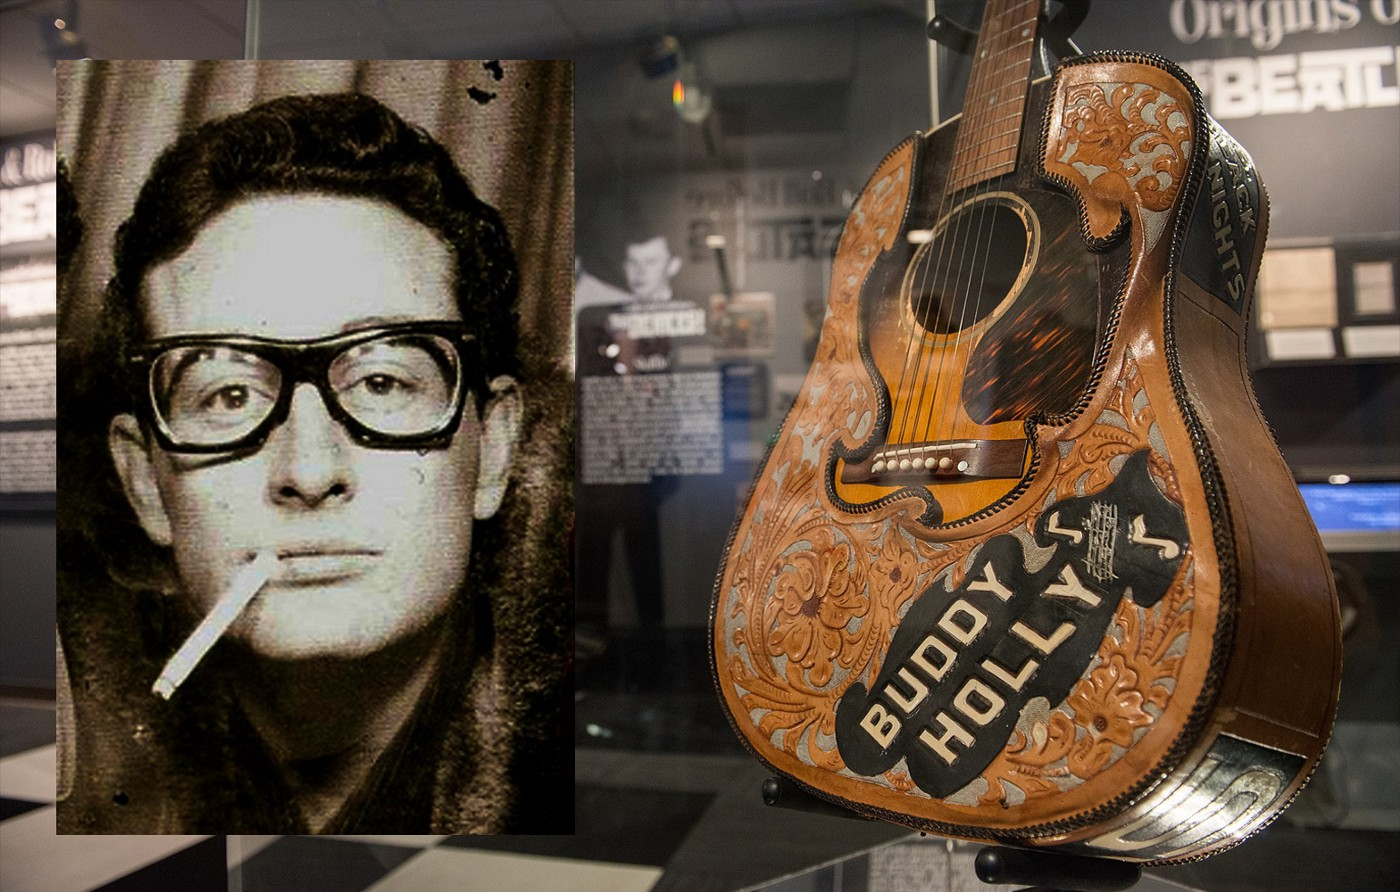 Main image Exhibit of Buddy Holly's acoustic guitar and leather cover at LBJ Presidential Library, Austin, TX 2015. Inset image  Buddy Holly in New York Central Station photo-booth 23 January 1959